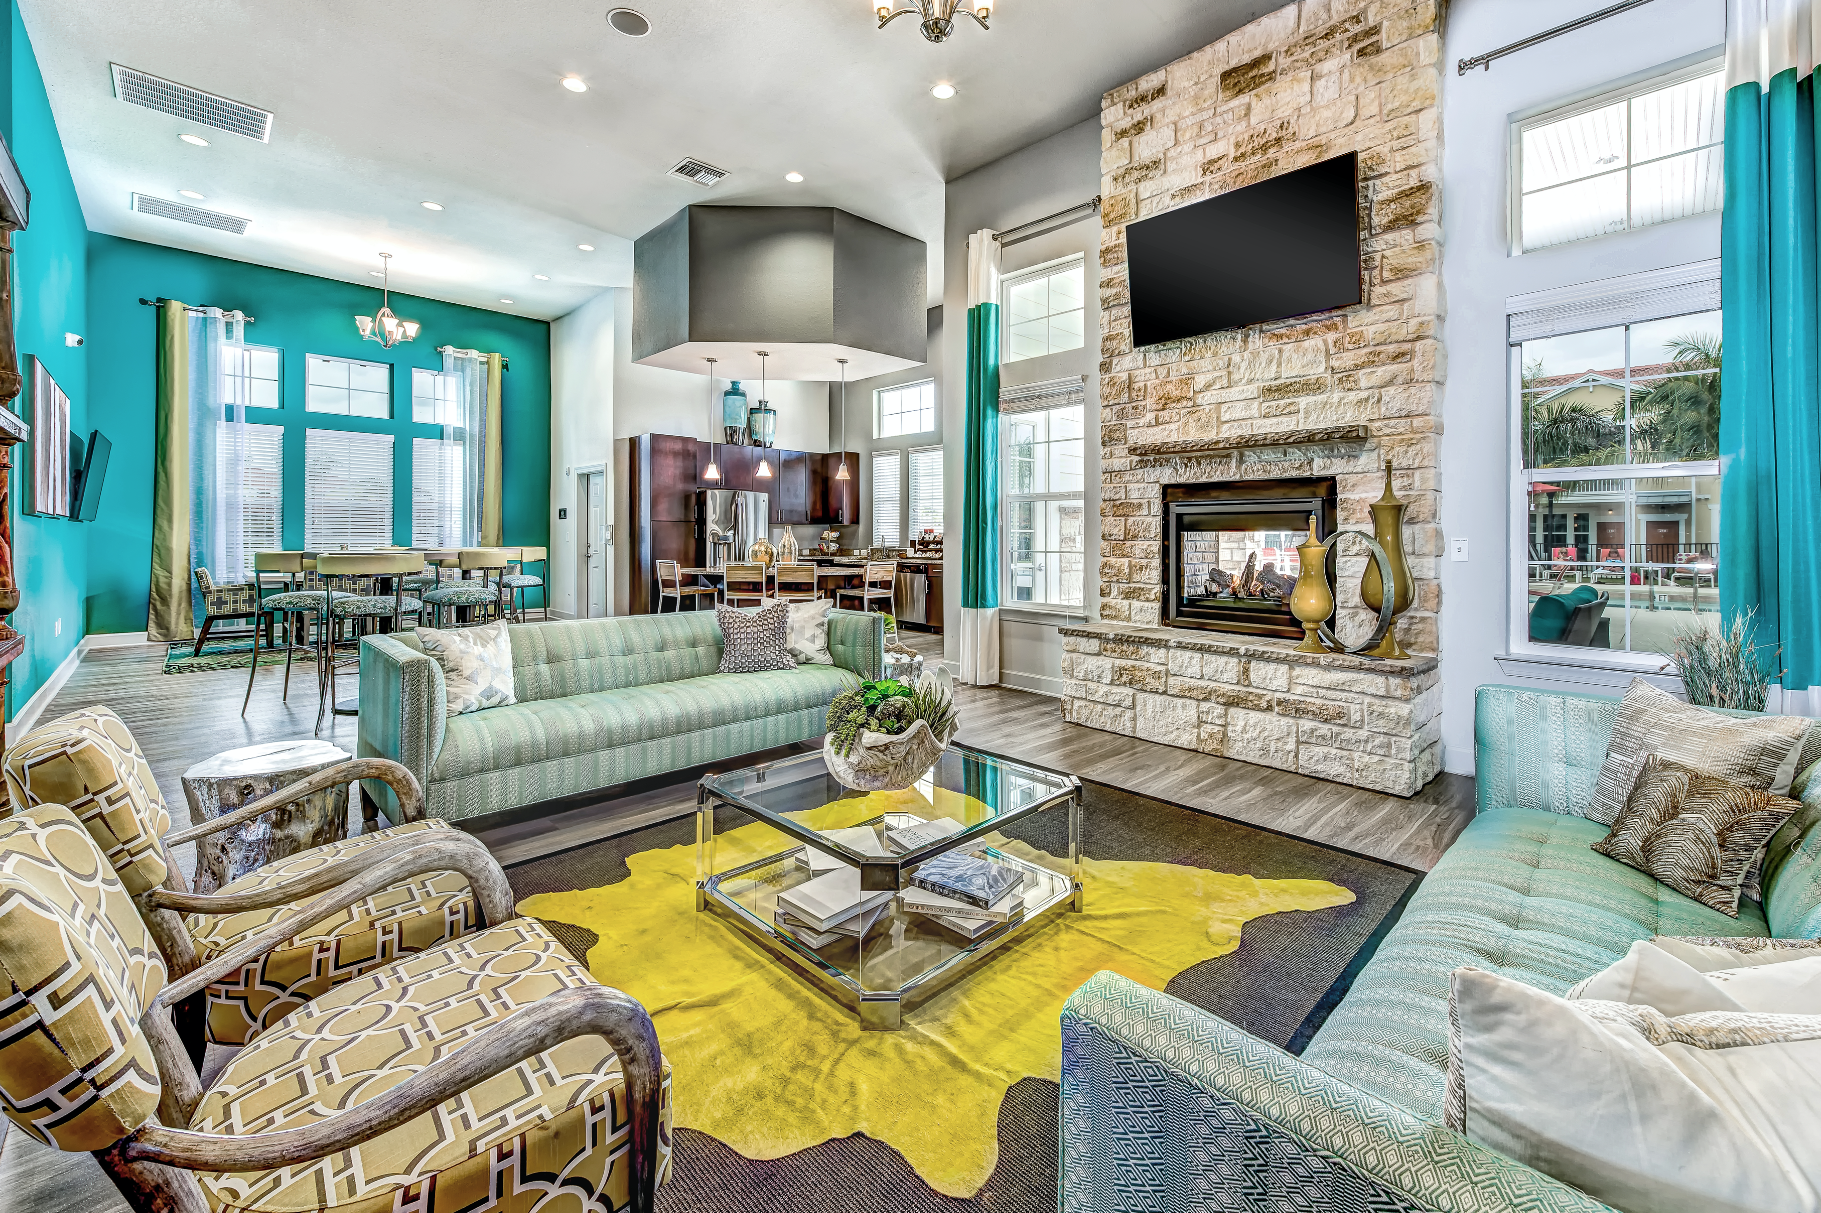 A vibrant and classic clubhouse interior at Longitude 81